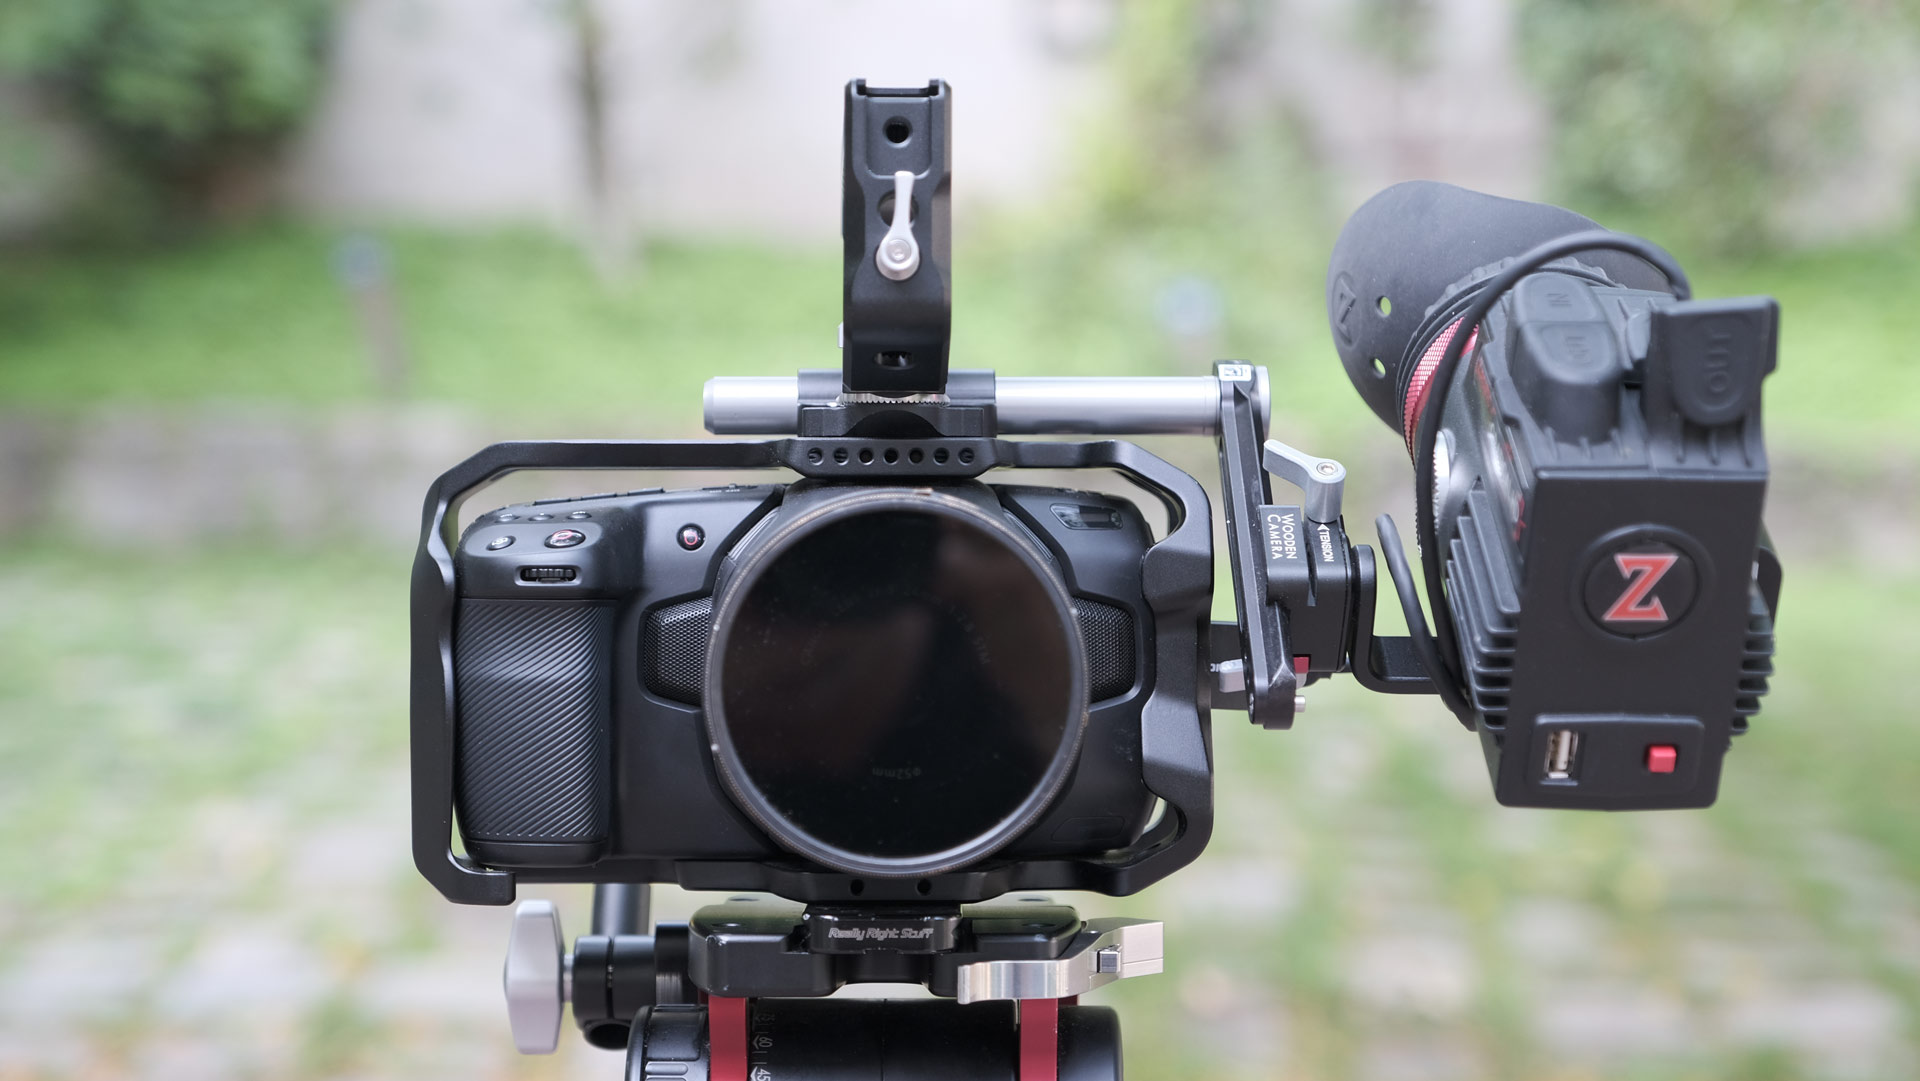 Bmpcc 6k Review Footage Five Reasons To Like The Pocket 6k Cined